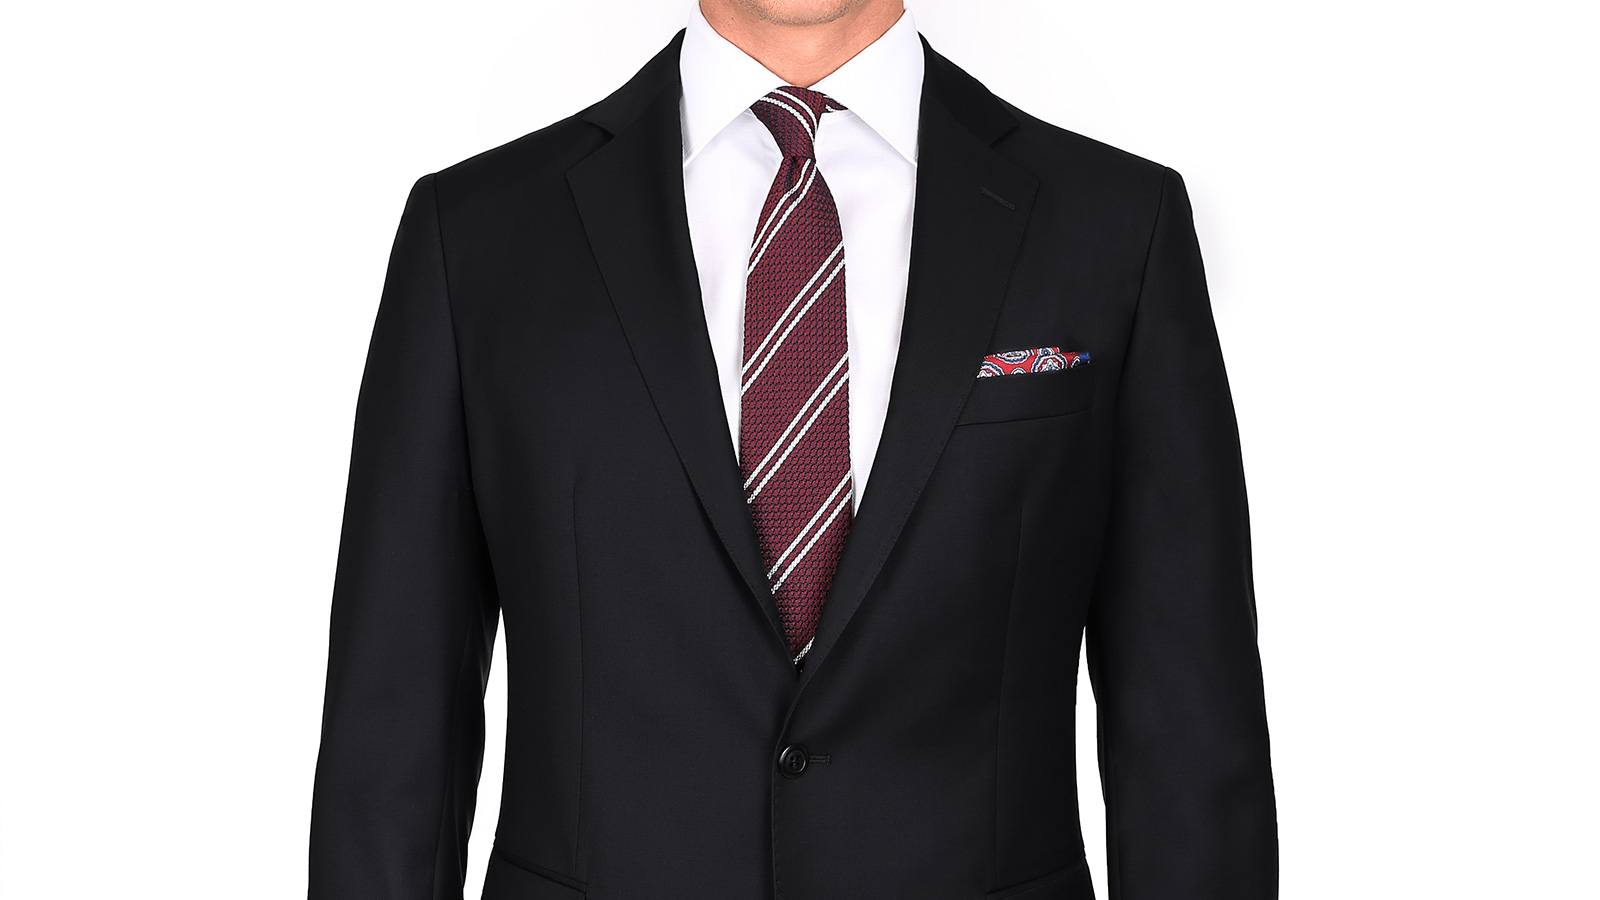 Suit in Solid Black Wool - slider image 1